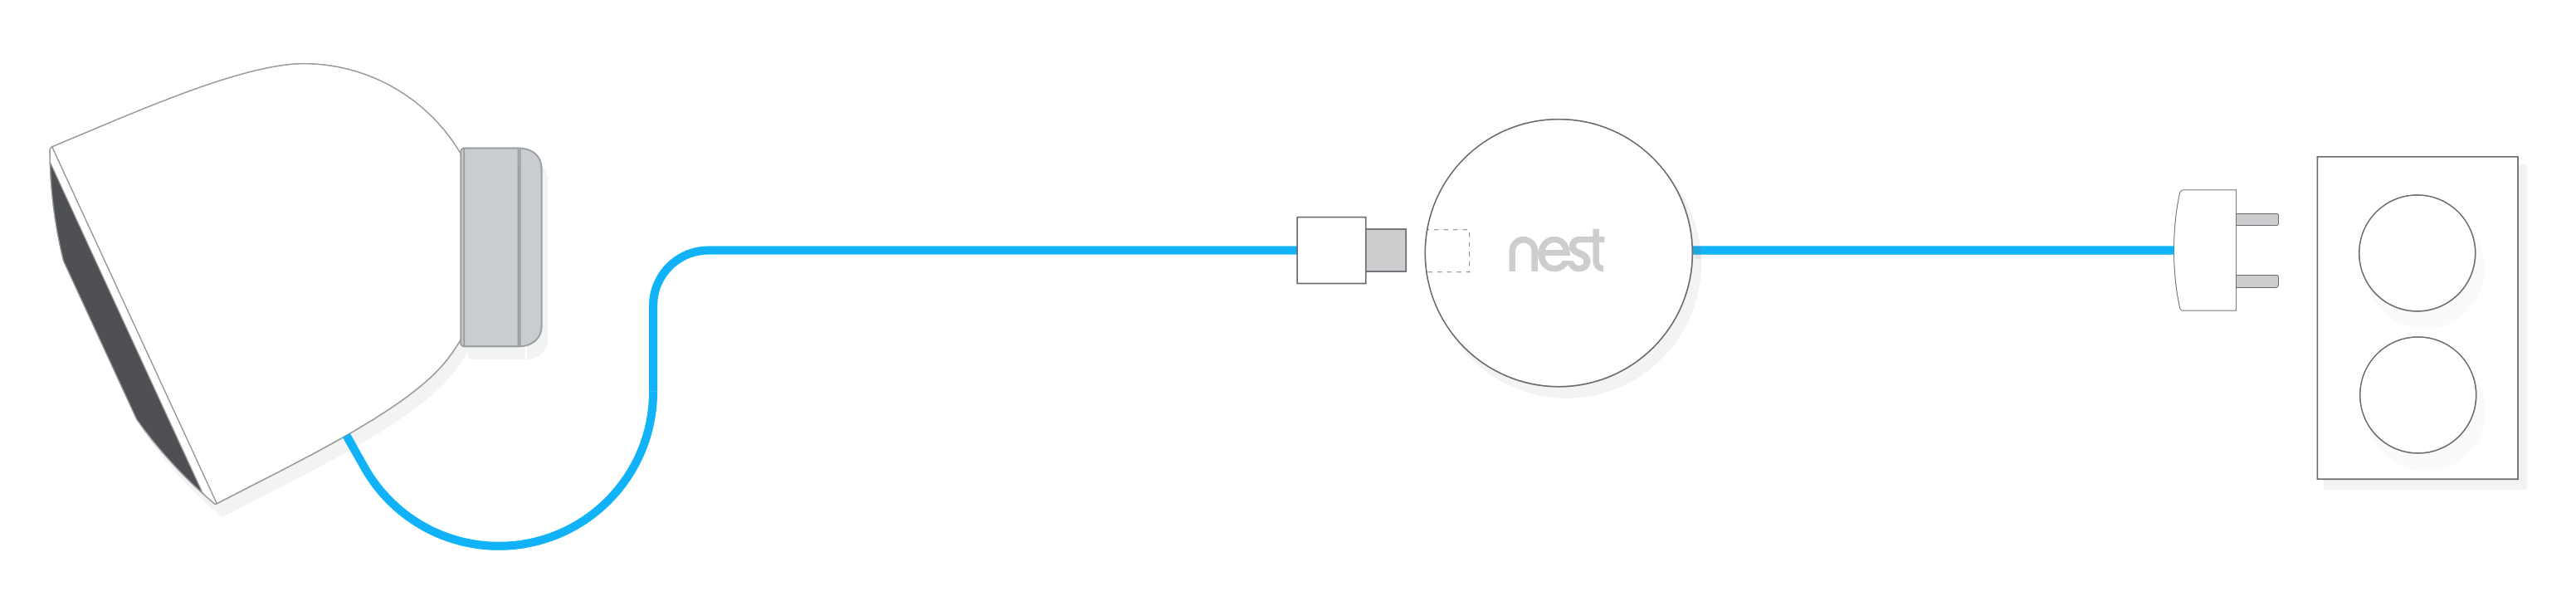 Nest Wiring Diagram For Camera | Wiring Diagram - Nest 1 Wiring Diagram